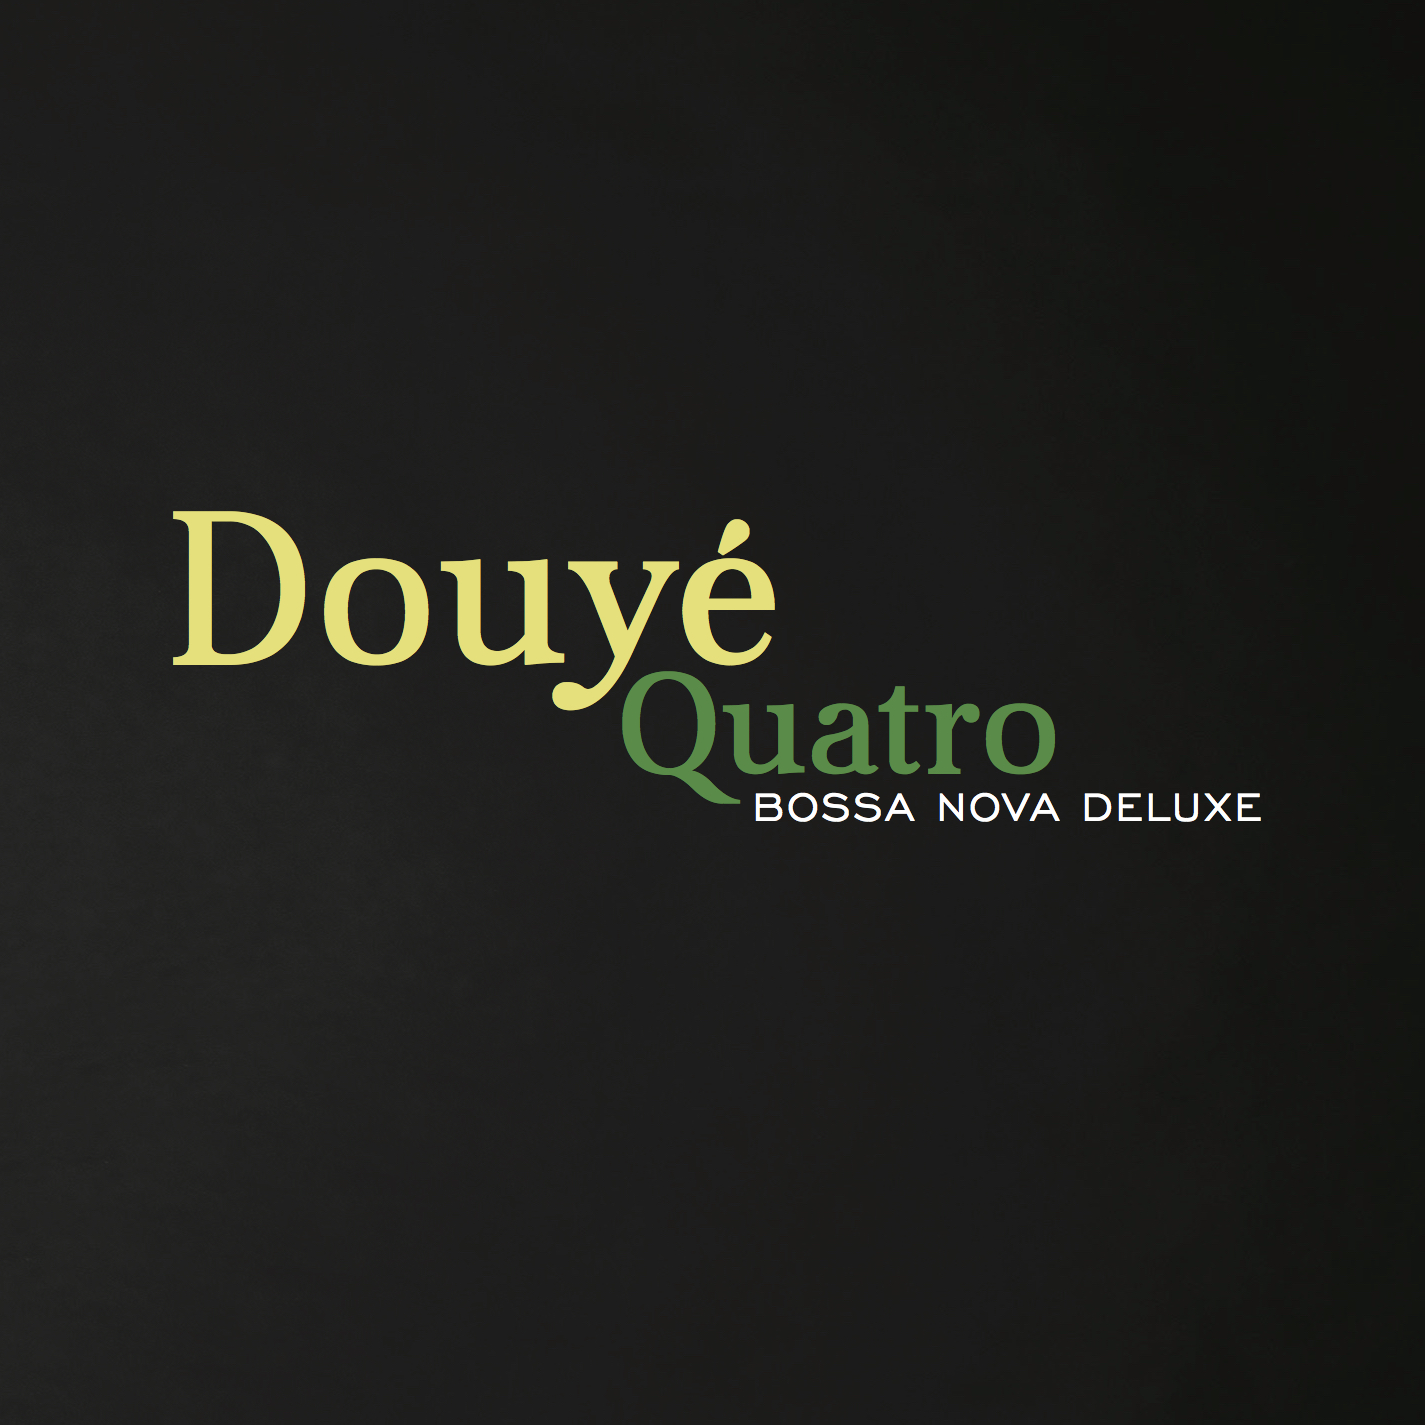 UPCOMING RELEASES: Quatro – Bossa Nova Deluxe by Douyé